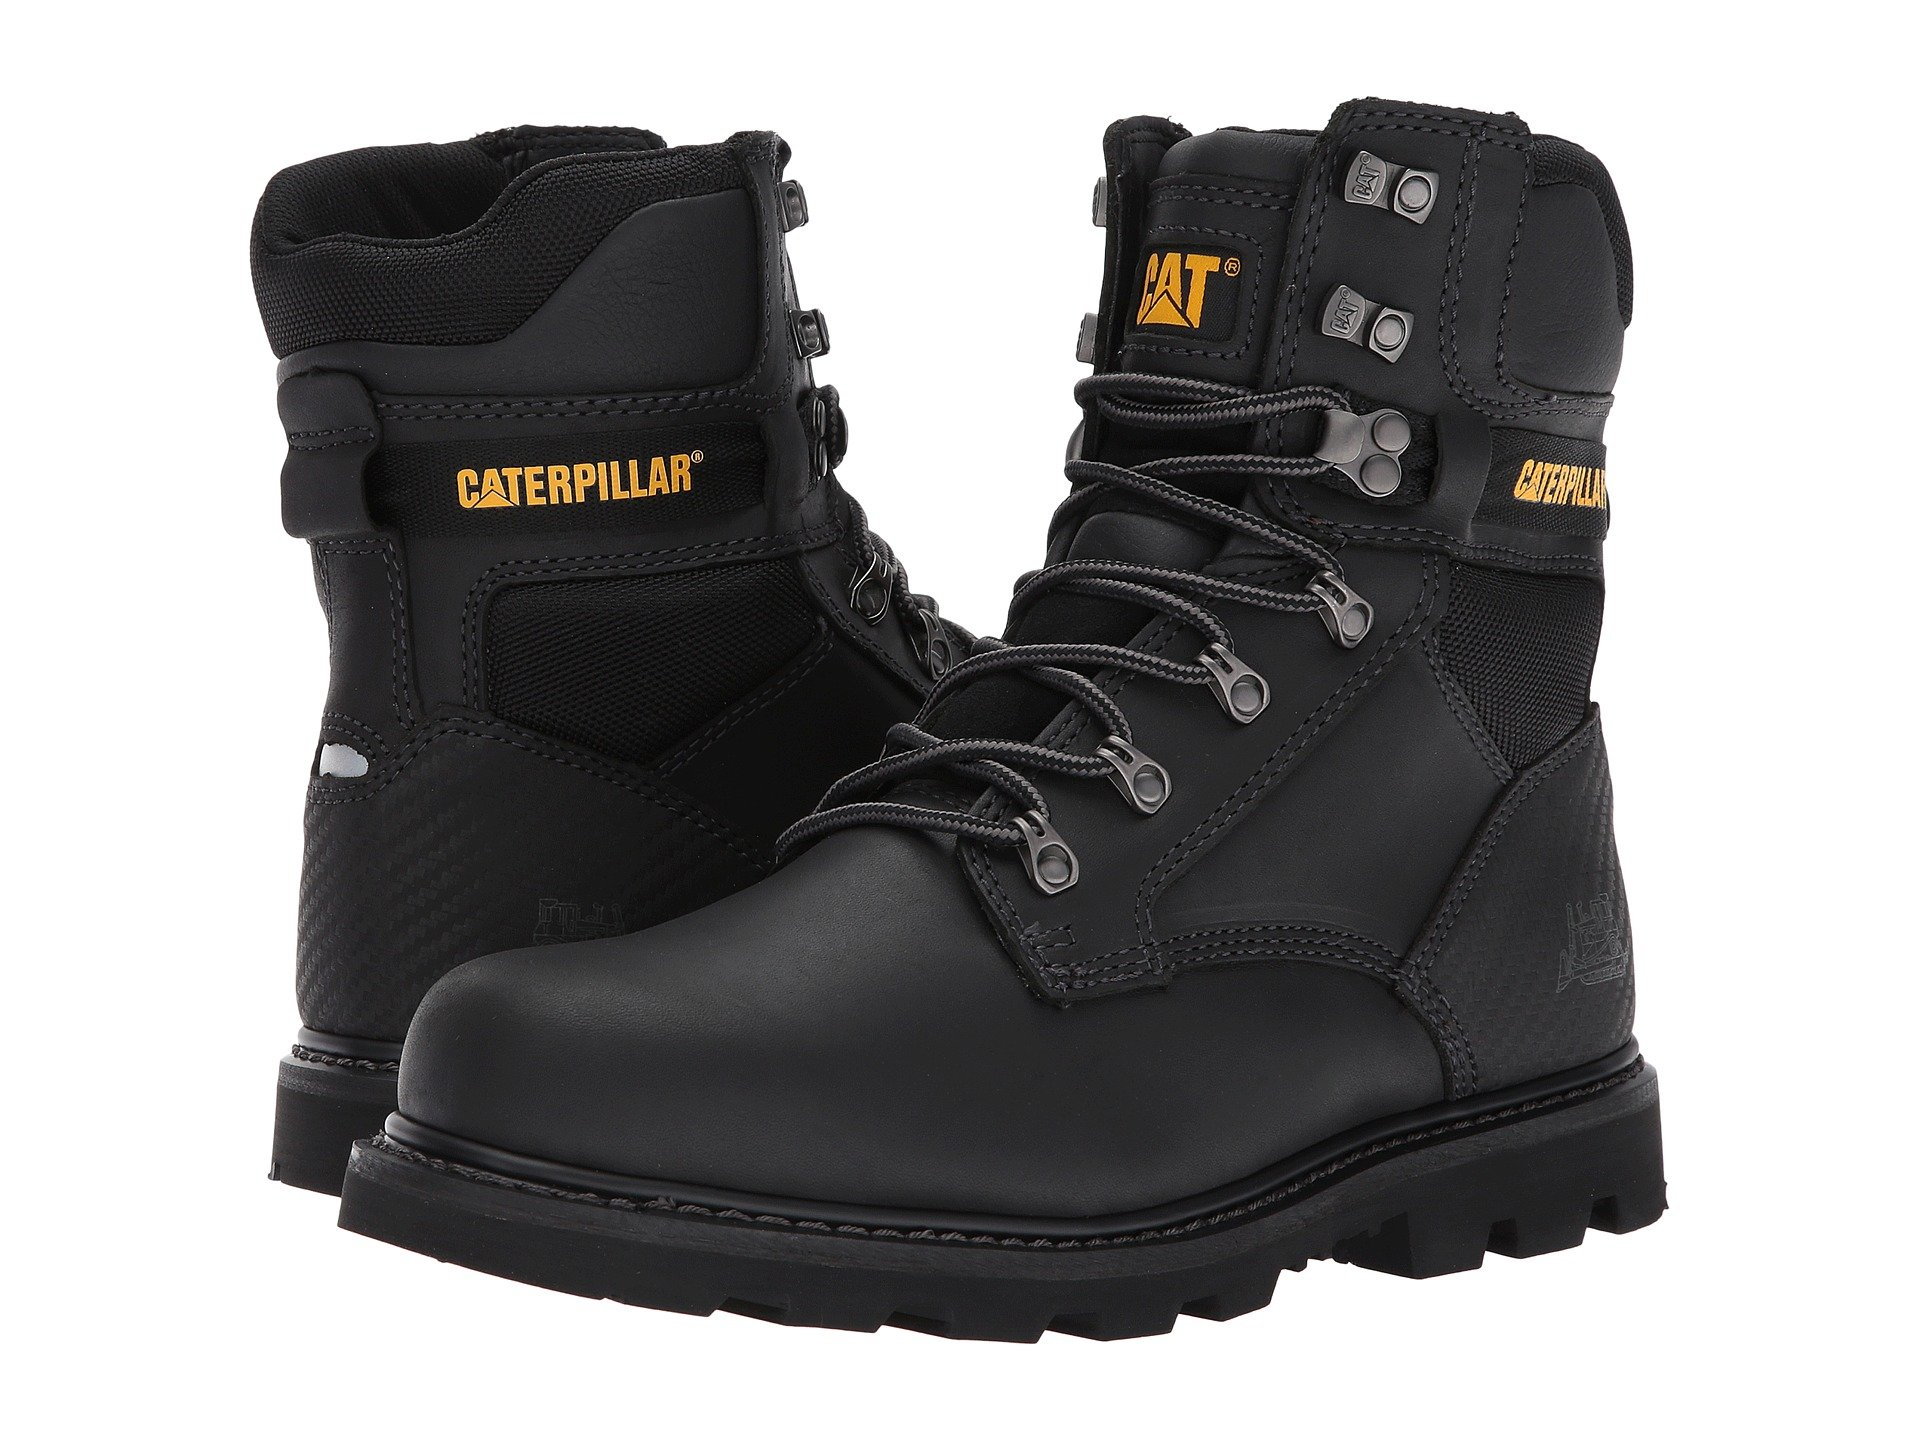 96abccc8f8caeb Men s Caterpillar Work and Safety Boots + FREE SHIPPING